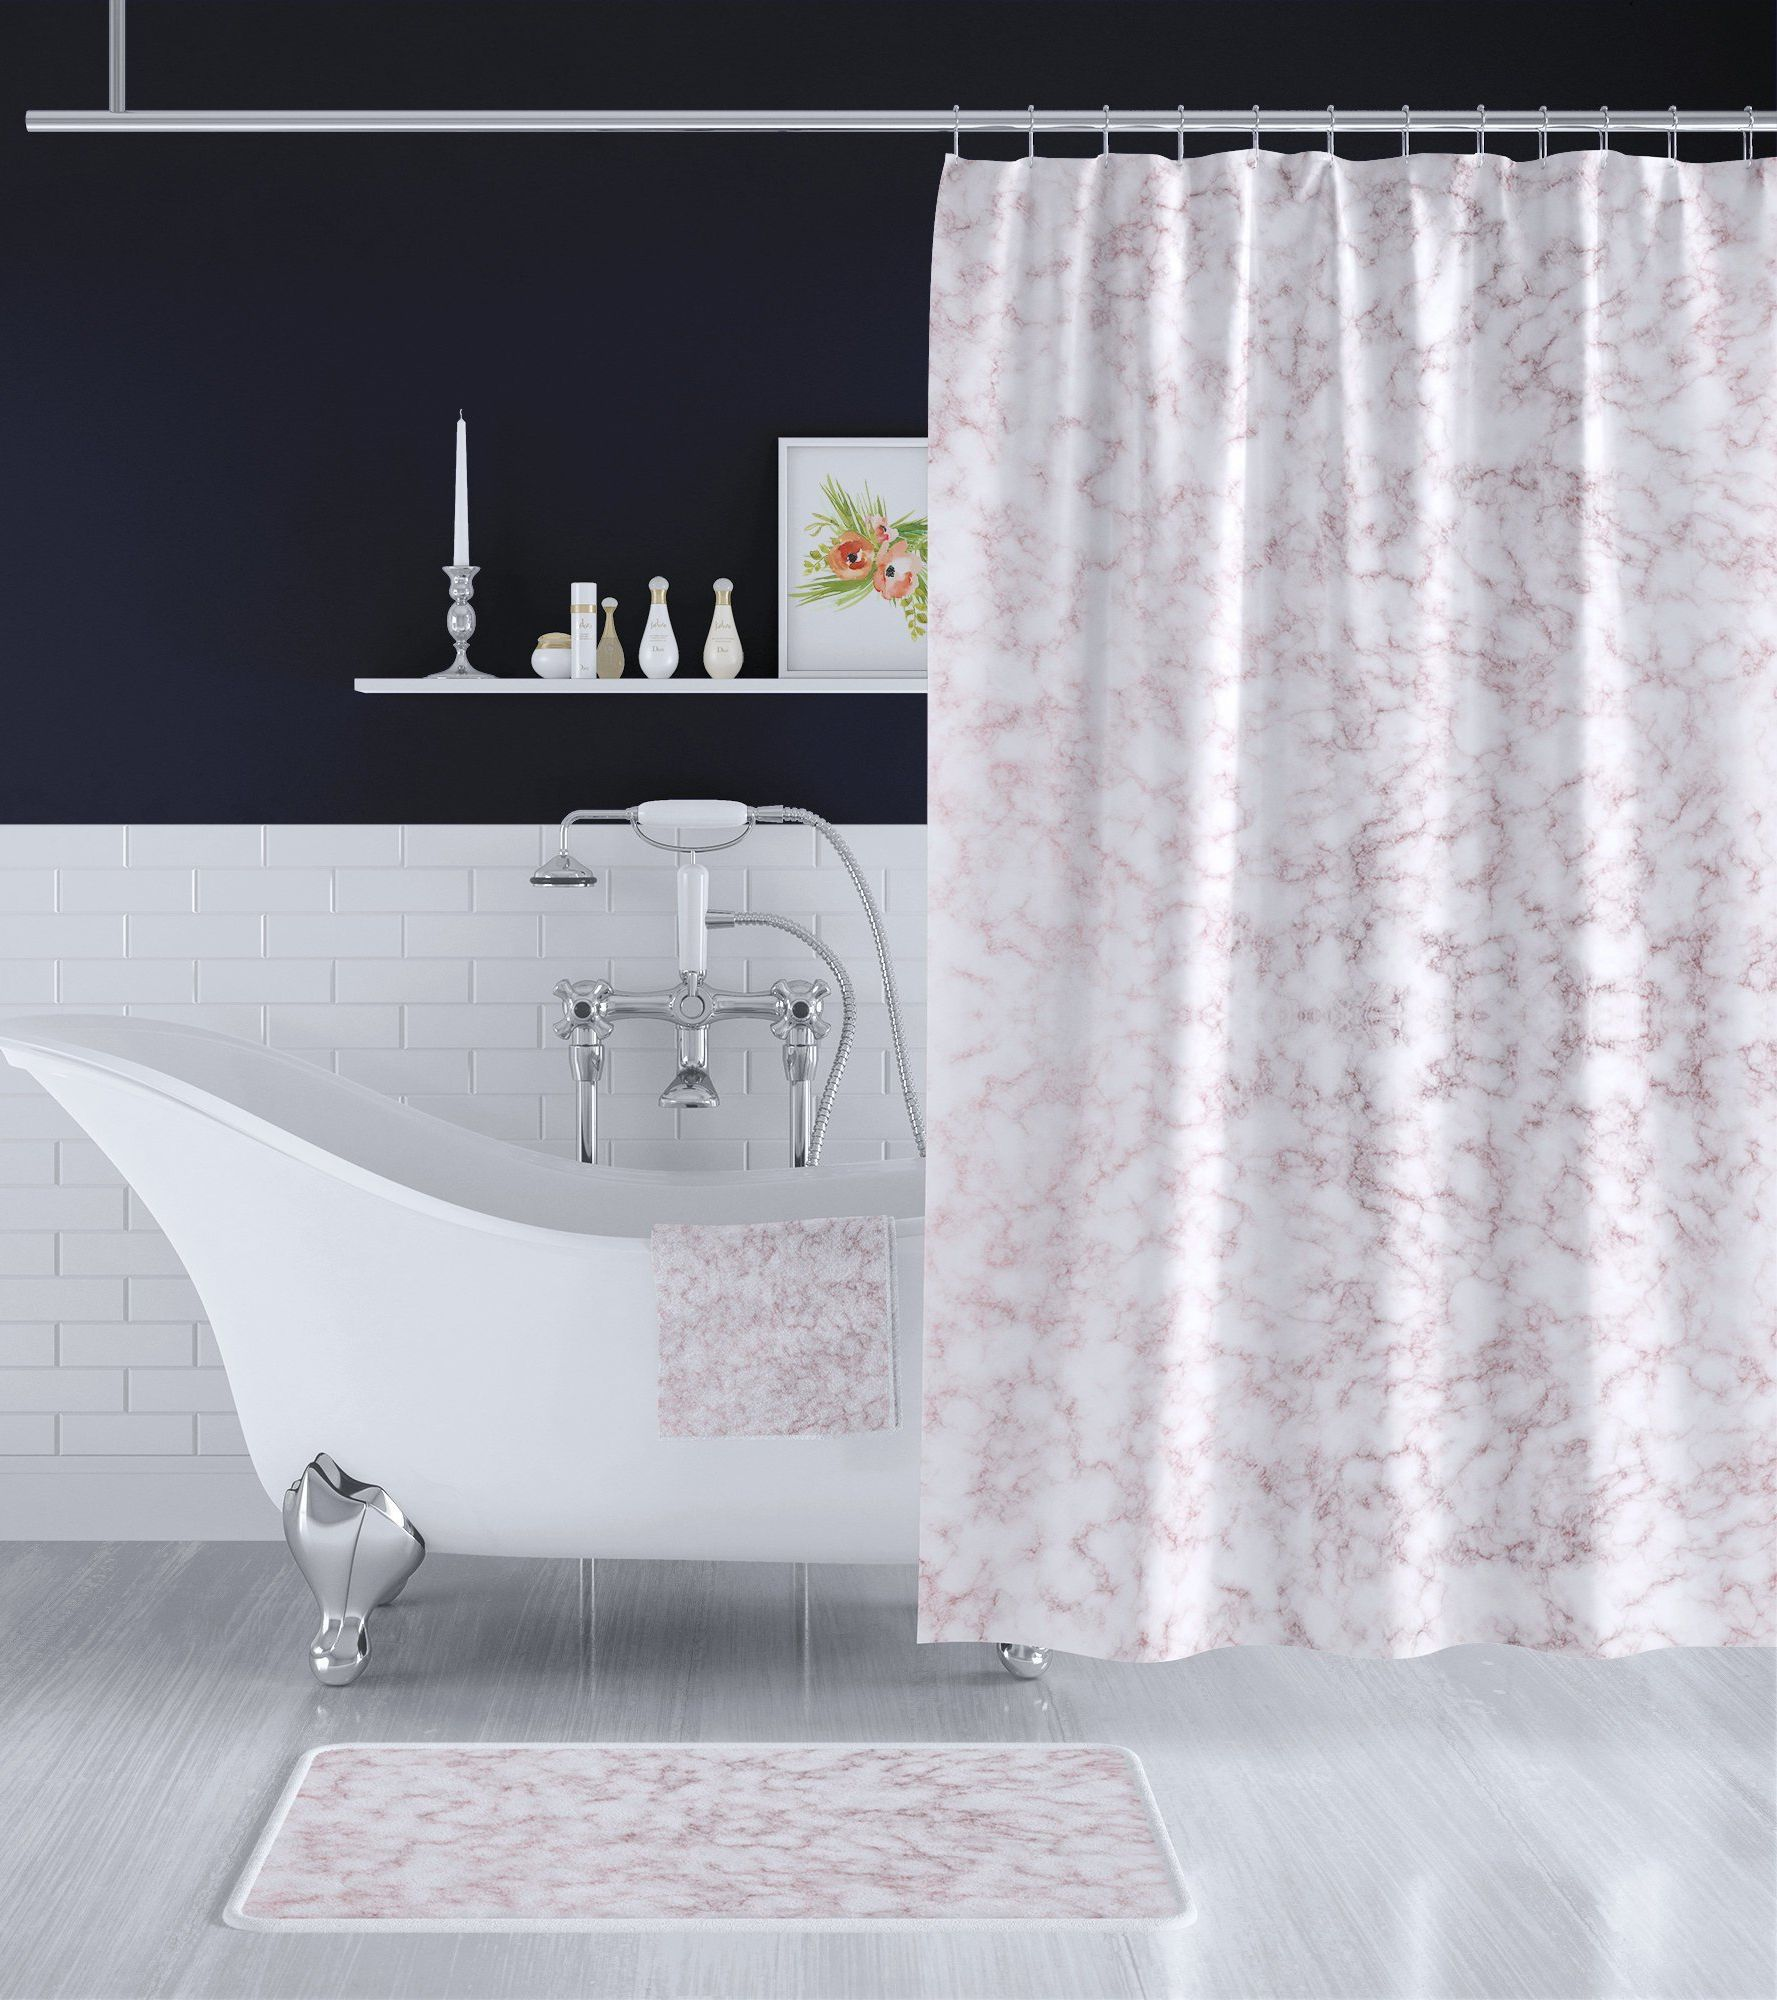 Rose Gold White Marble Bathroom Decor Set Long Shower Curtain Bath Towel Bath Mat Matching Compl White Marble Bathrooms Marble Bathroom Bathroom Decor Sets